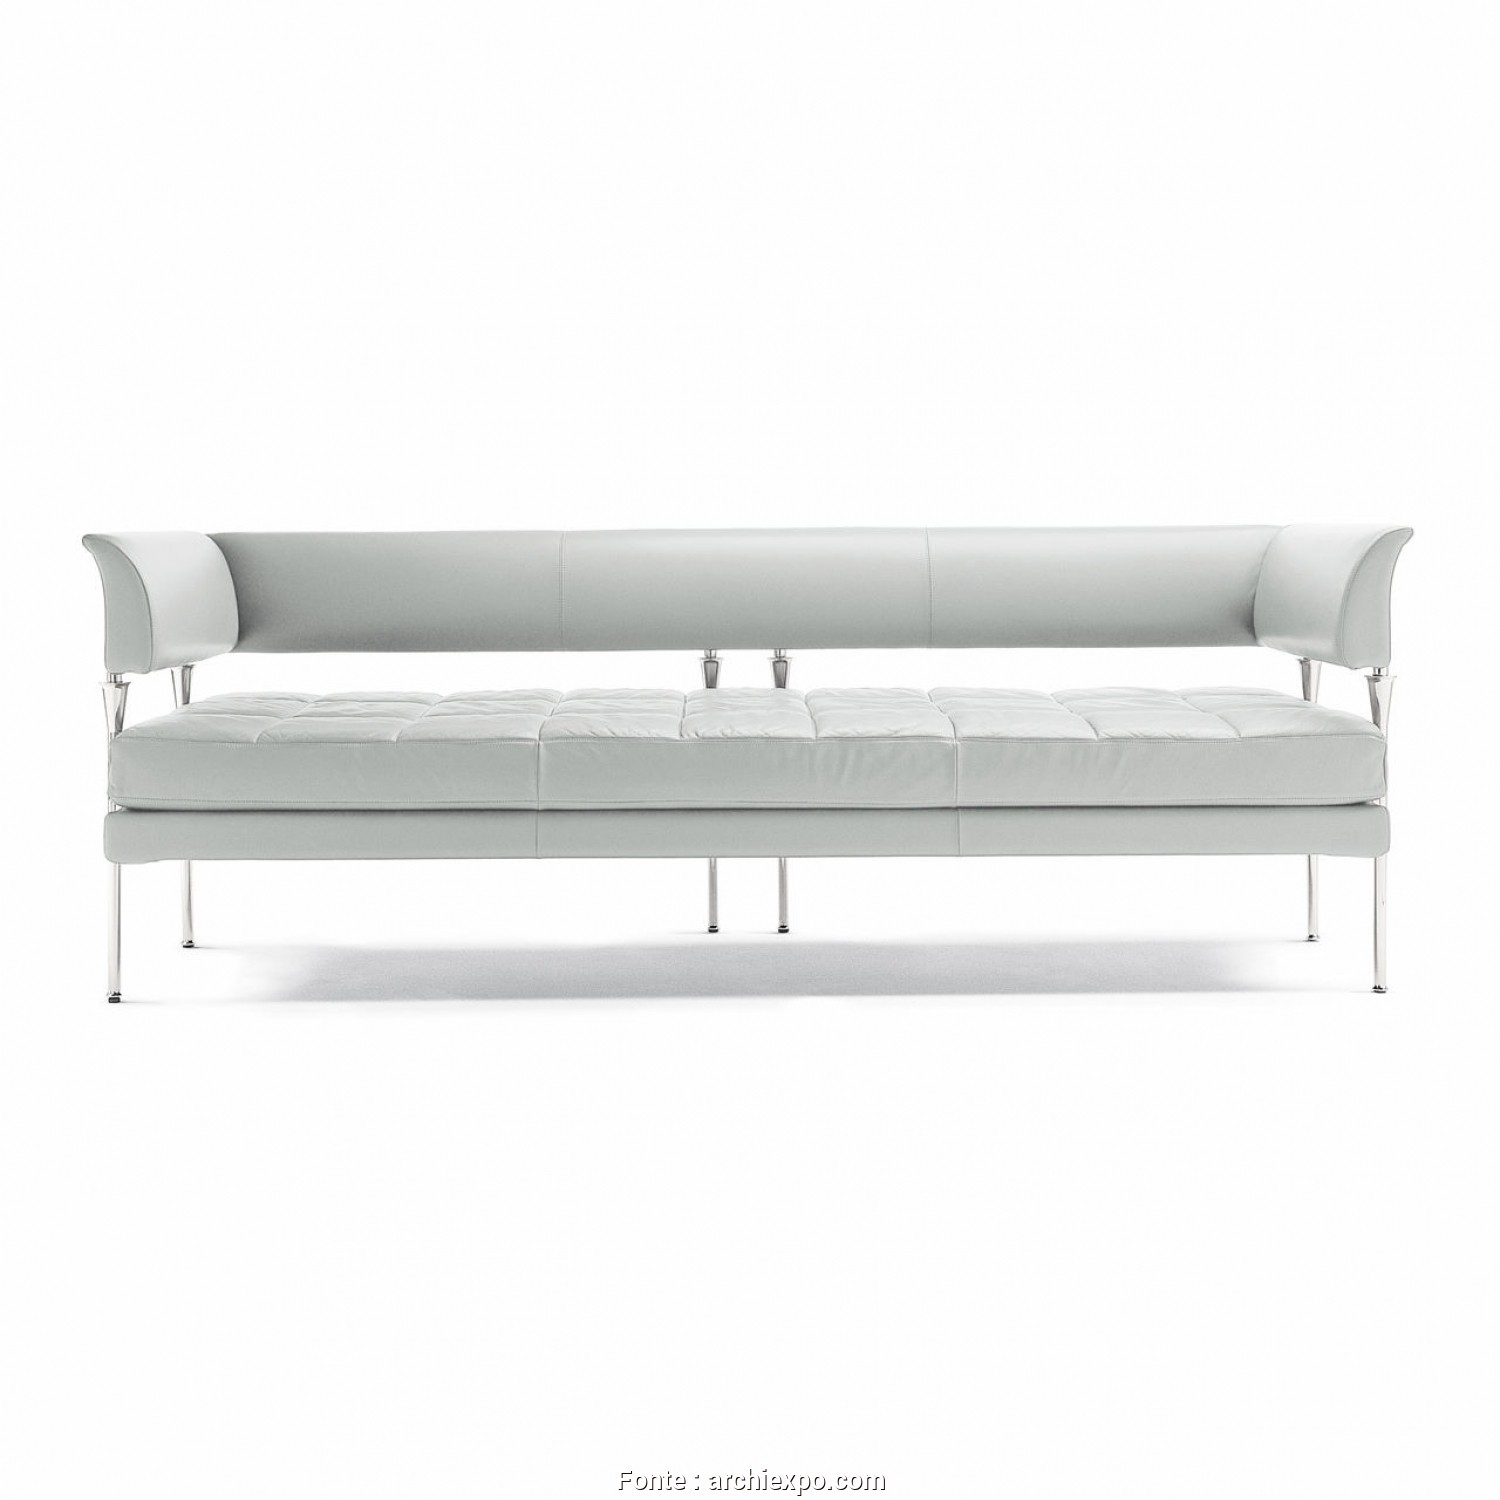 Divano Frau Fumoir, Buono Contemporary Sofa / Leather / 3-Seater / 2-Person, HYDRA CASTOR By Luca Scacchetti